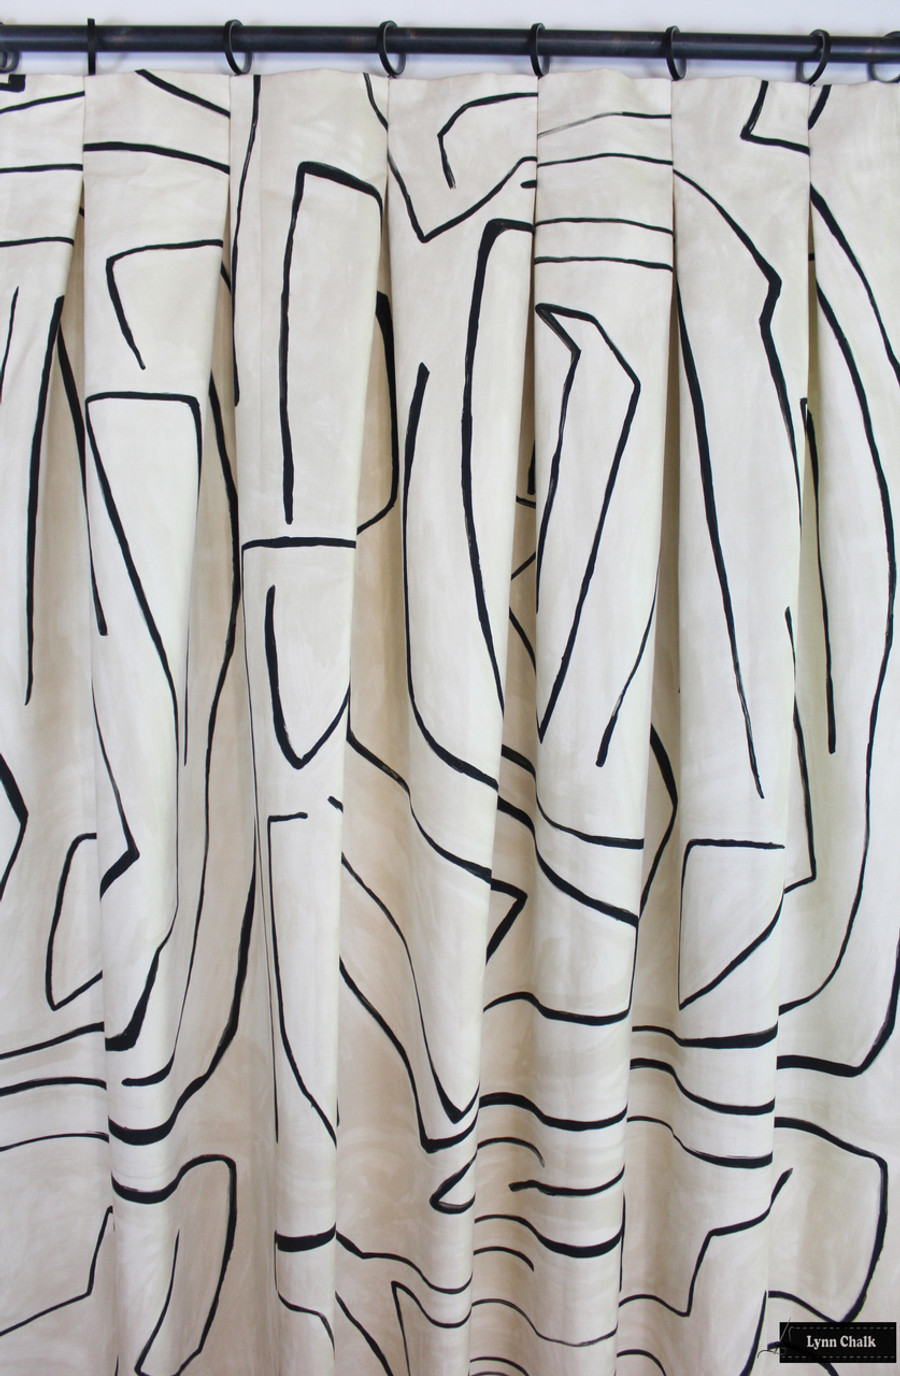 Drapes with Inverted Pleats in Kelly Wearstler Graffito in Linen/Onyx